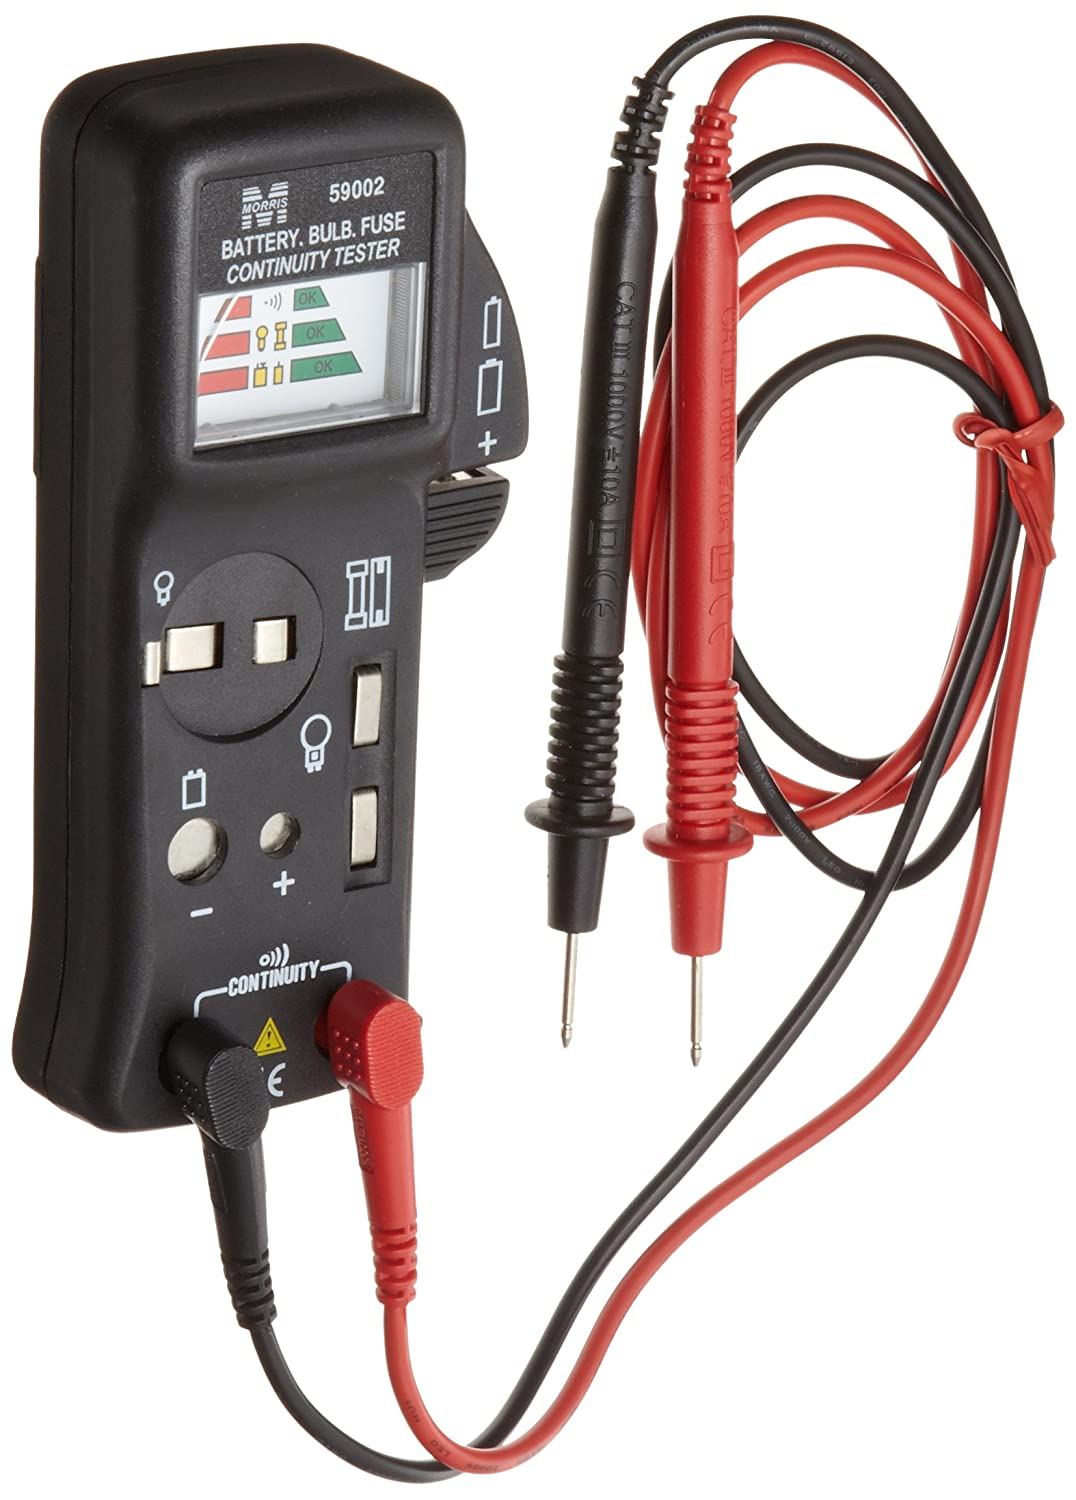 Fuse Bulb Continuity Tester Morris Products 59002 Battery